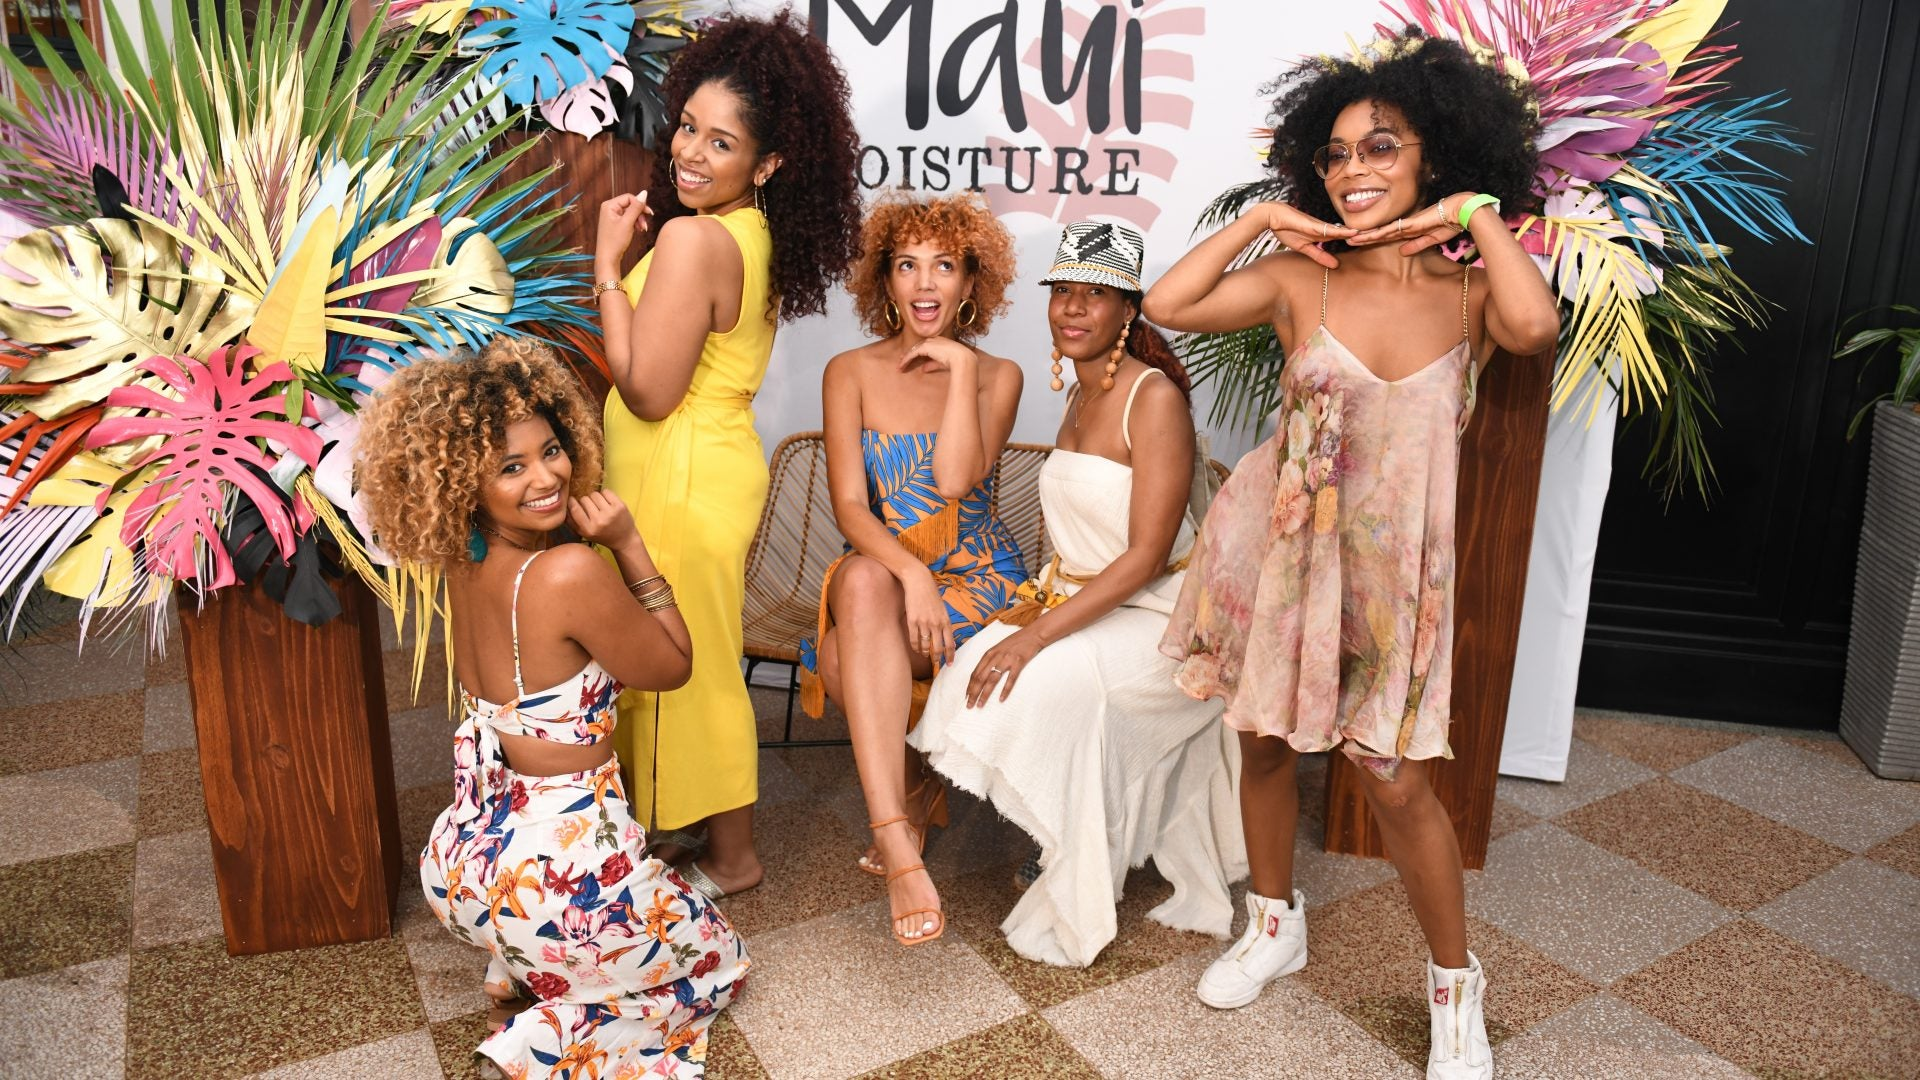 Maui Moisture Is The Beauty Brand Influencers Are Flocking To